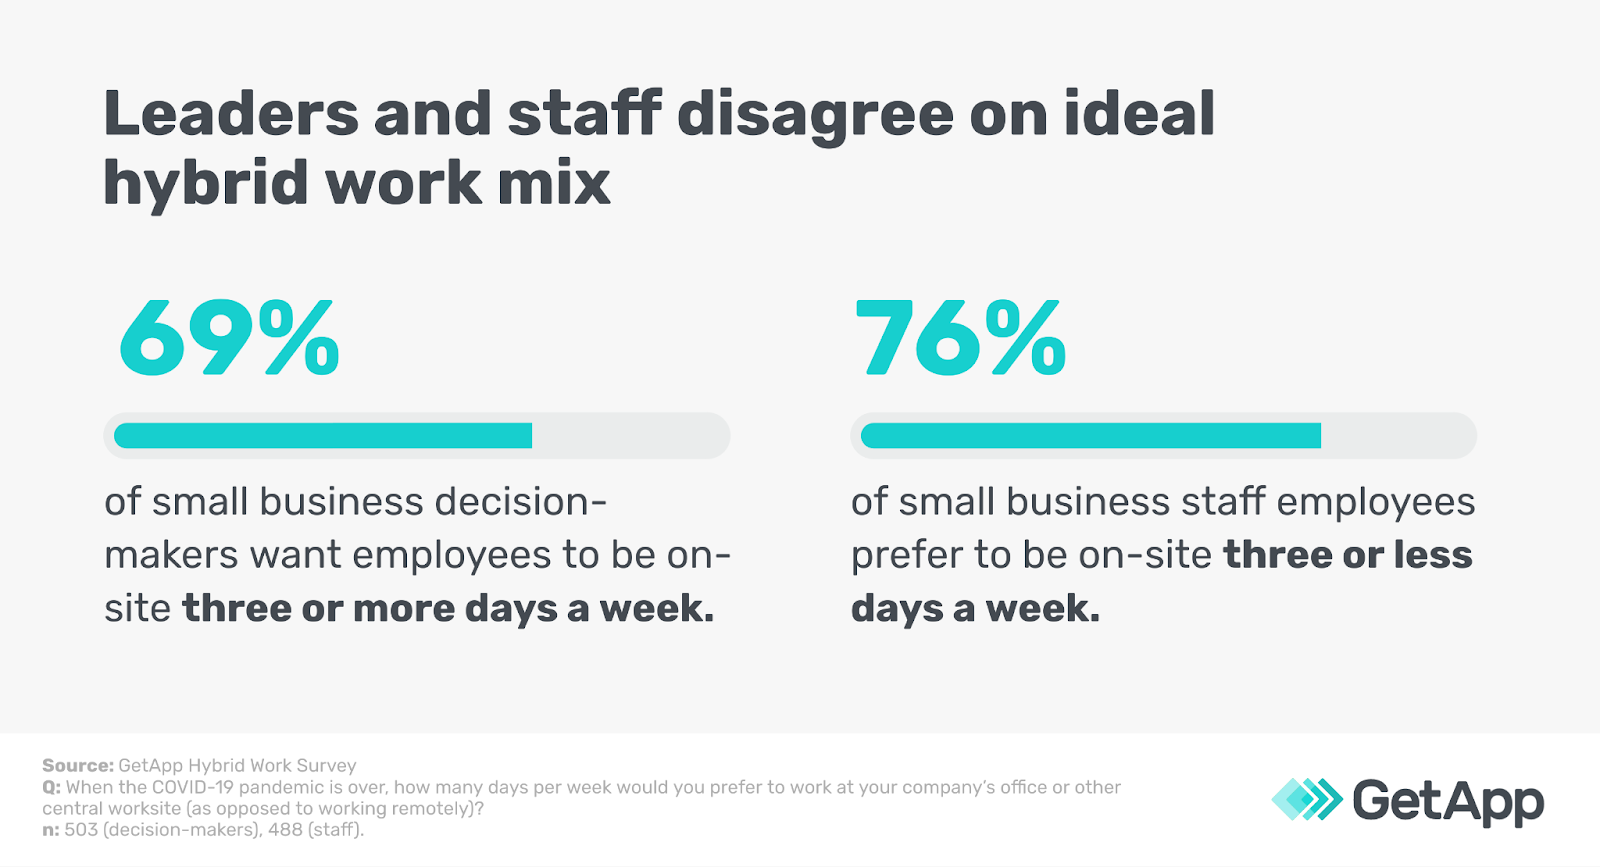 Leaders and staff disagree on ideal hybrid work mix